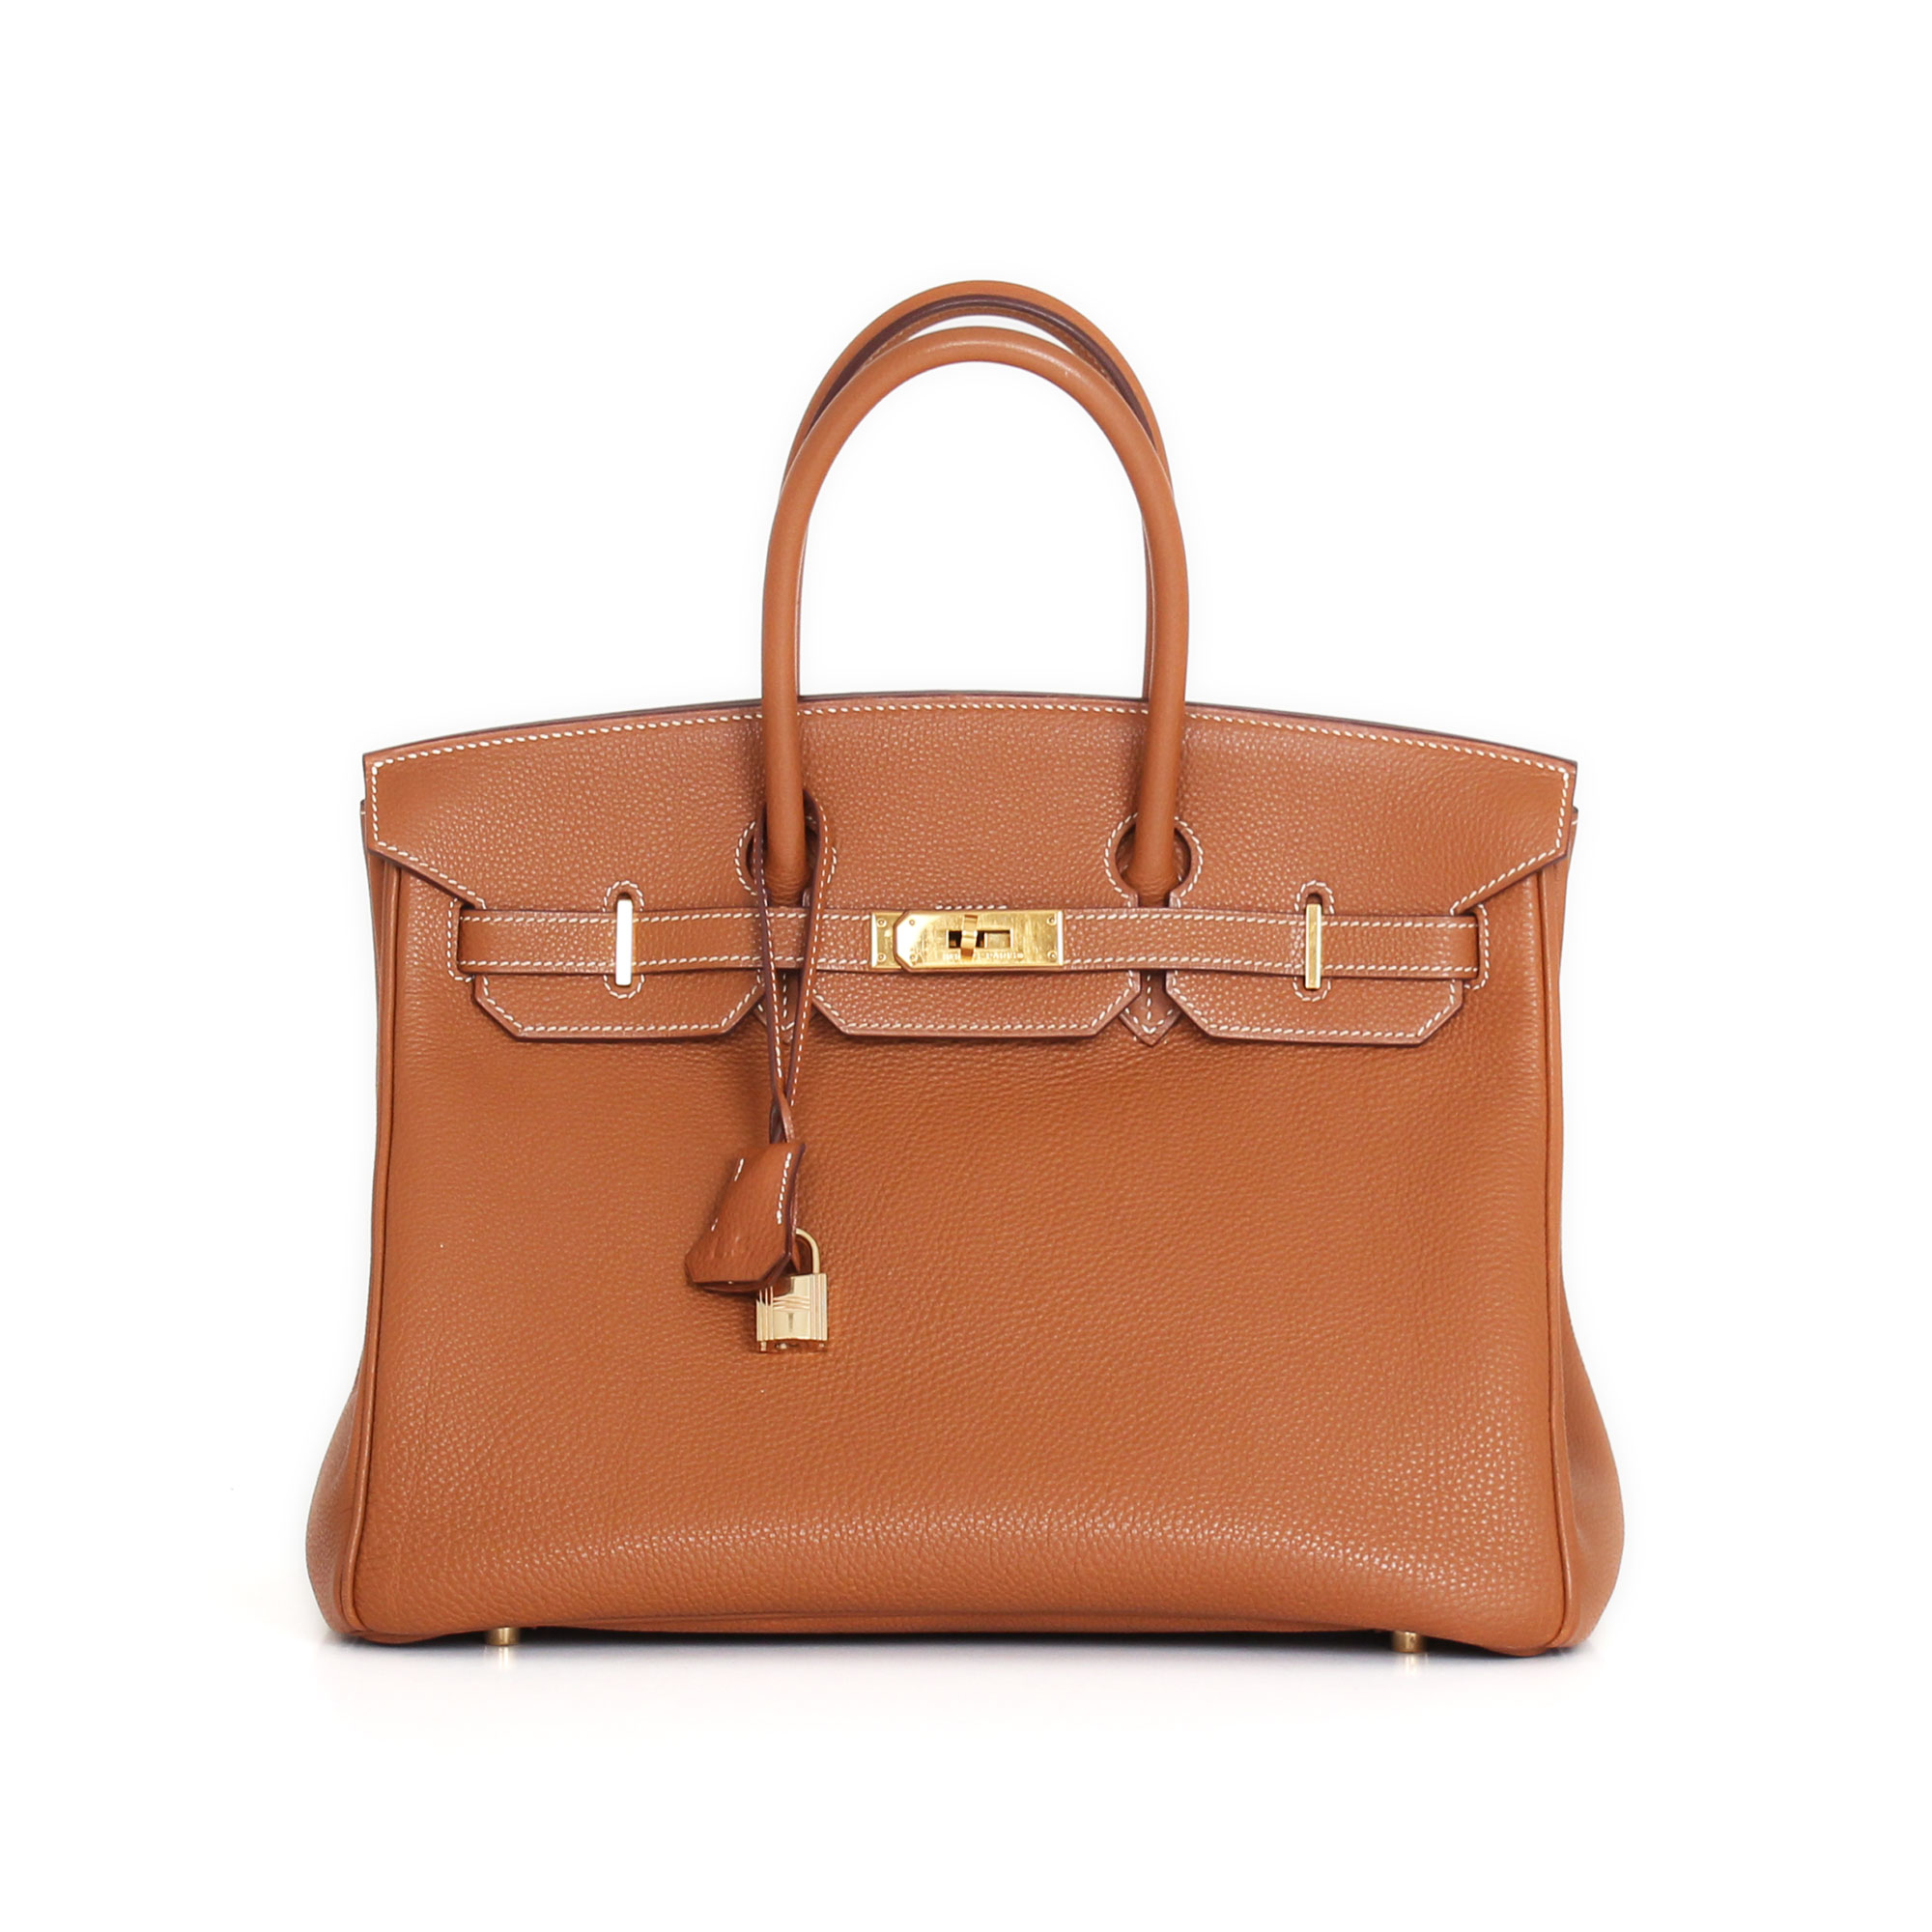 e67bdf154db3 Hermès Bag Birkin 35 leather Togo Gold and golden hardware